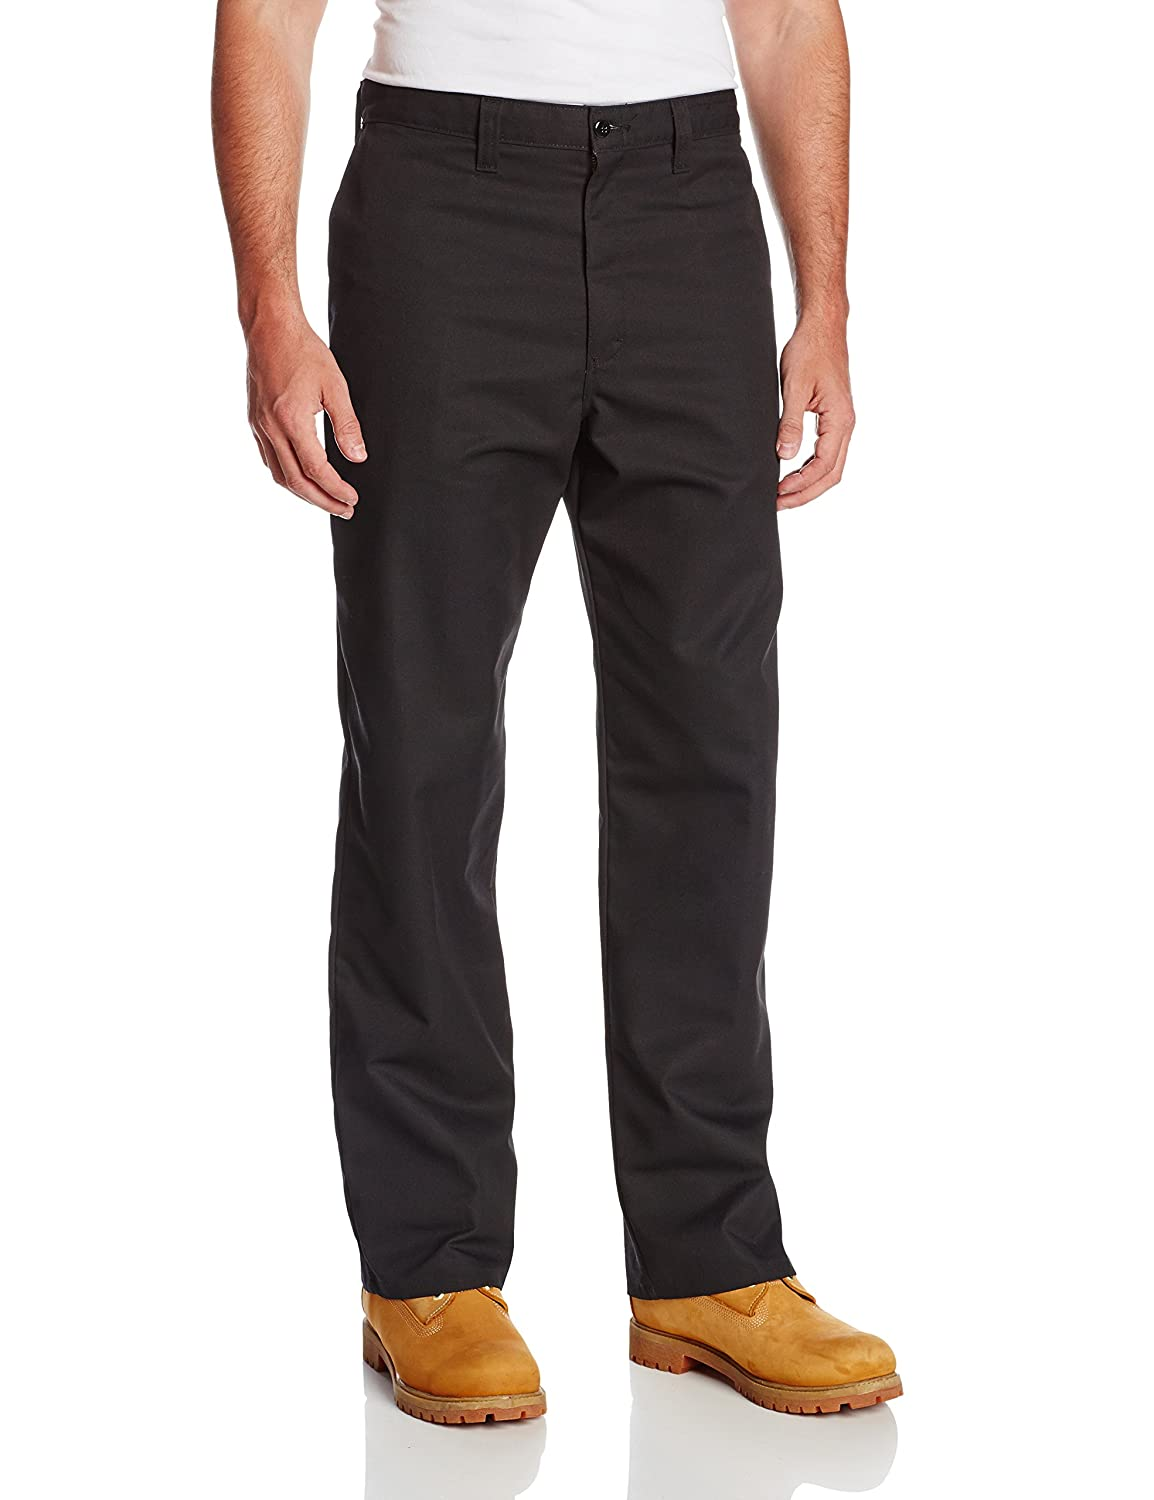 Dickies Occupational Workwear LP812BK 54x30 Polyester/Cotton Relaxed Fit Men's Industrial Flat Front Pant with Straight Leg, 54 Waist Size, 30 Inseam, Black 54 Waist Size 30 Inseam